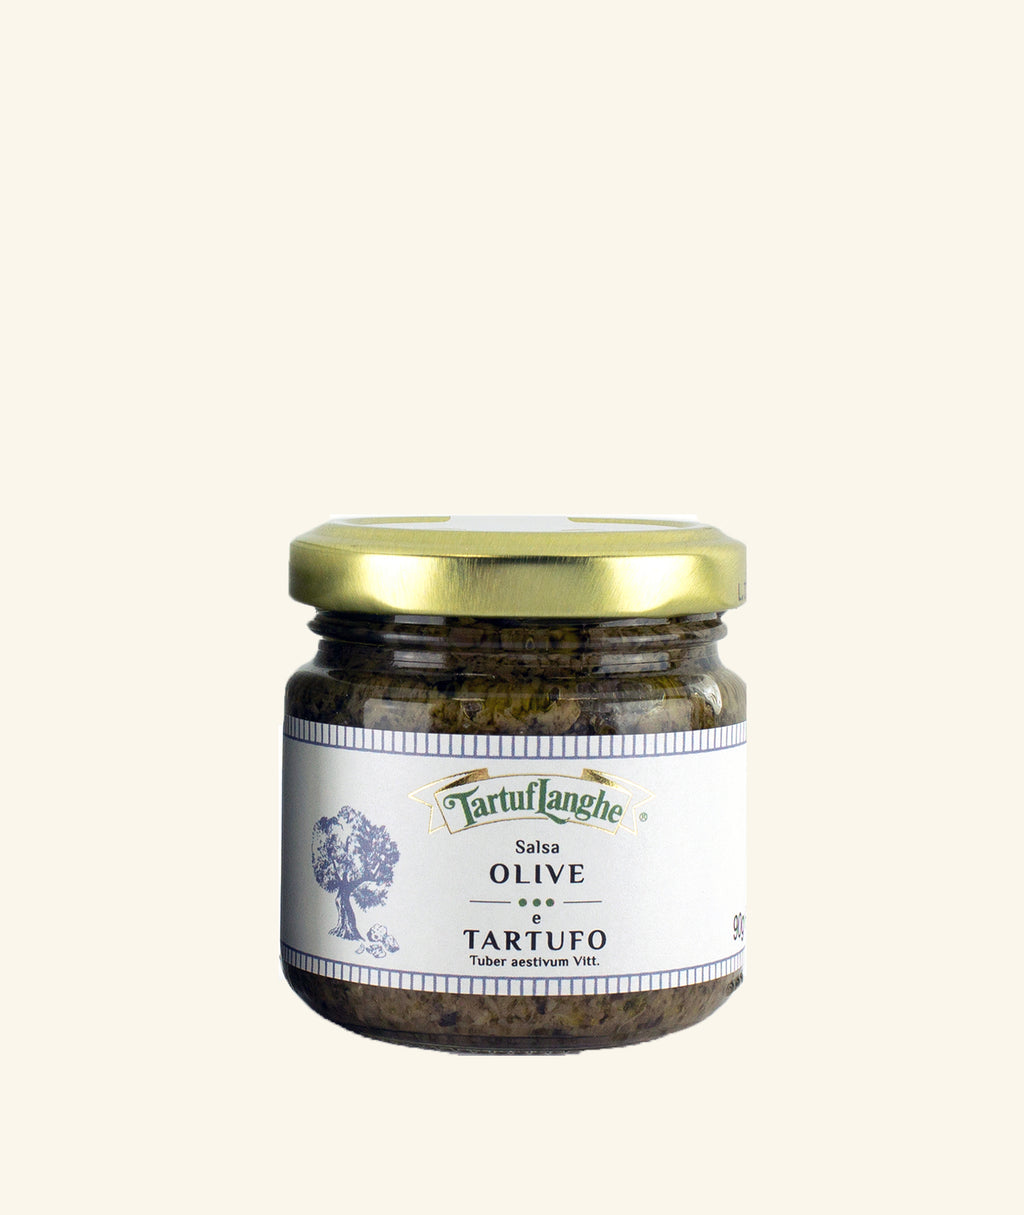 Olive and Truffle Spread